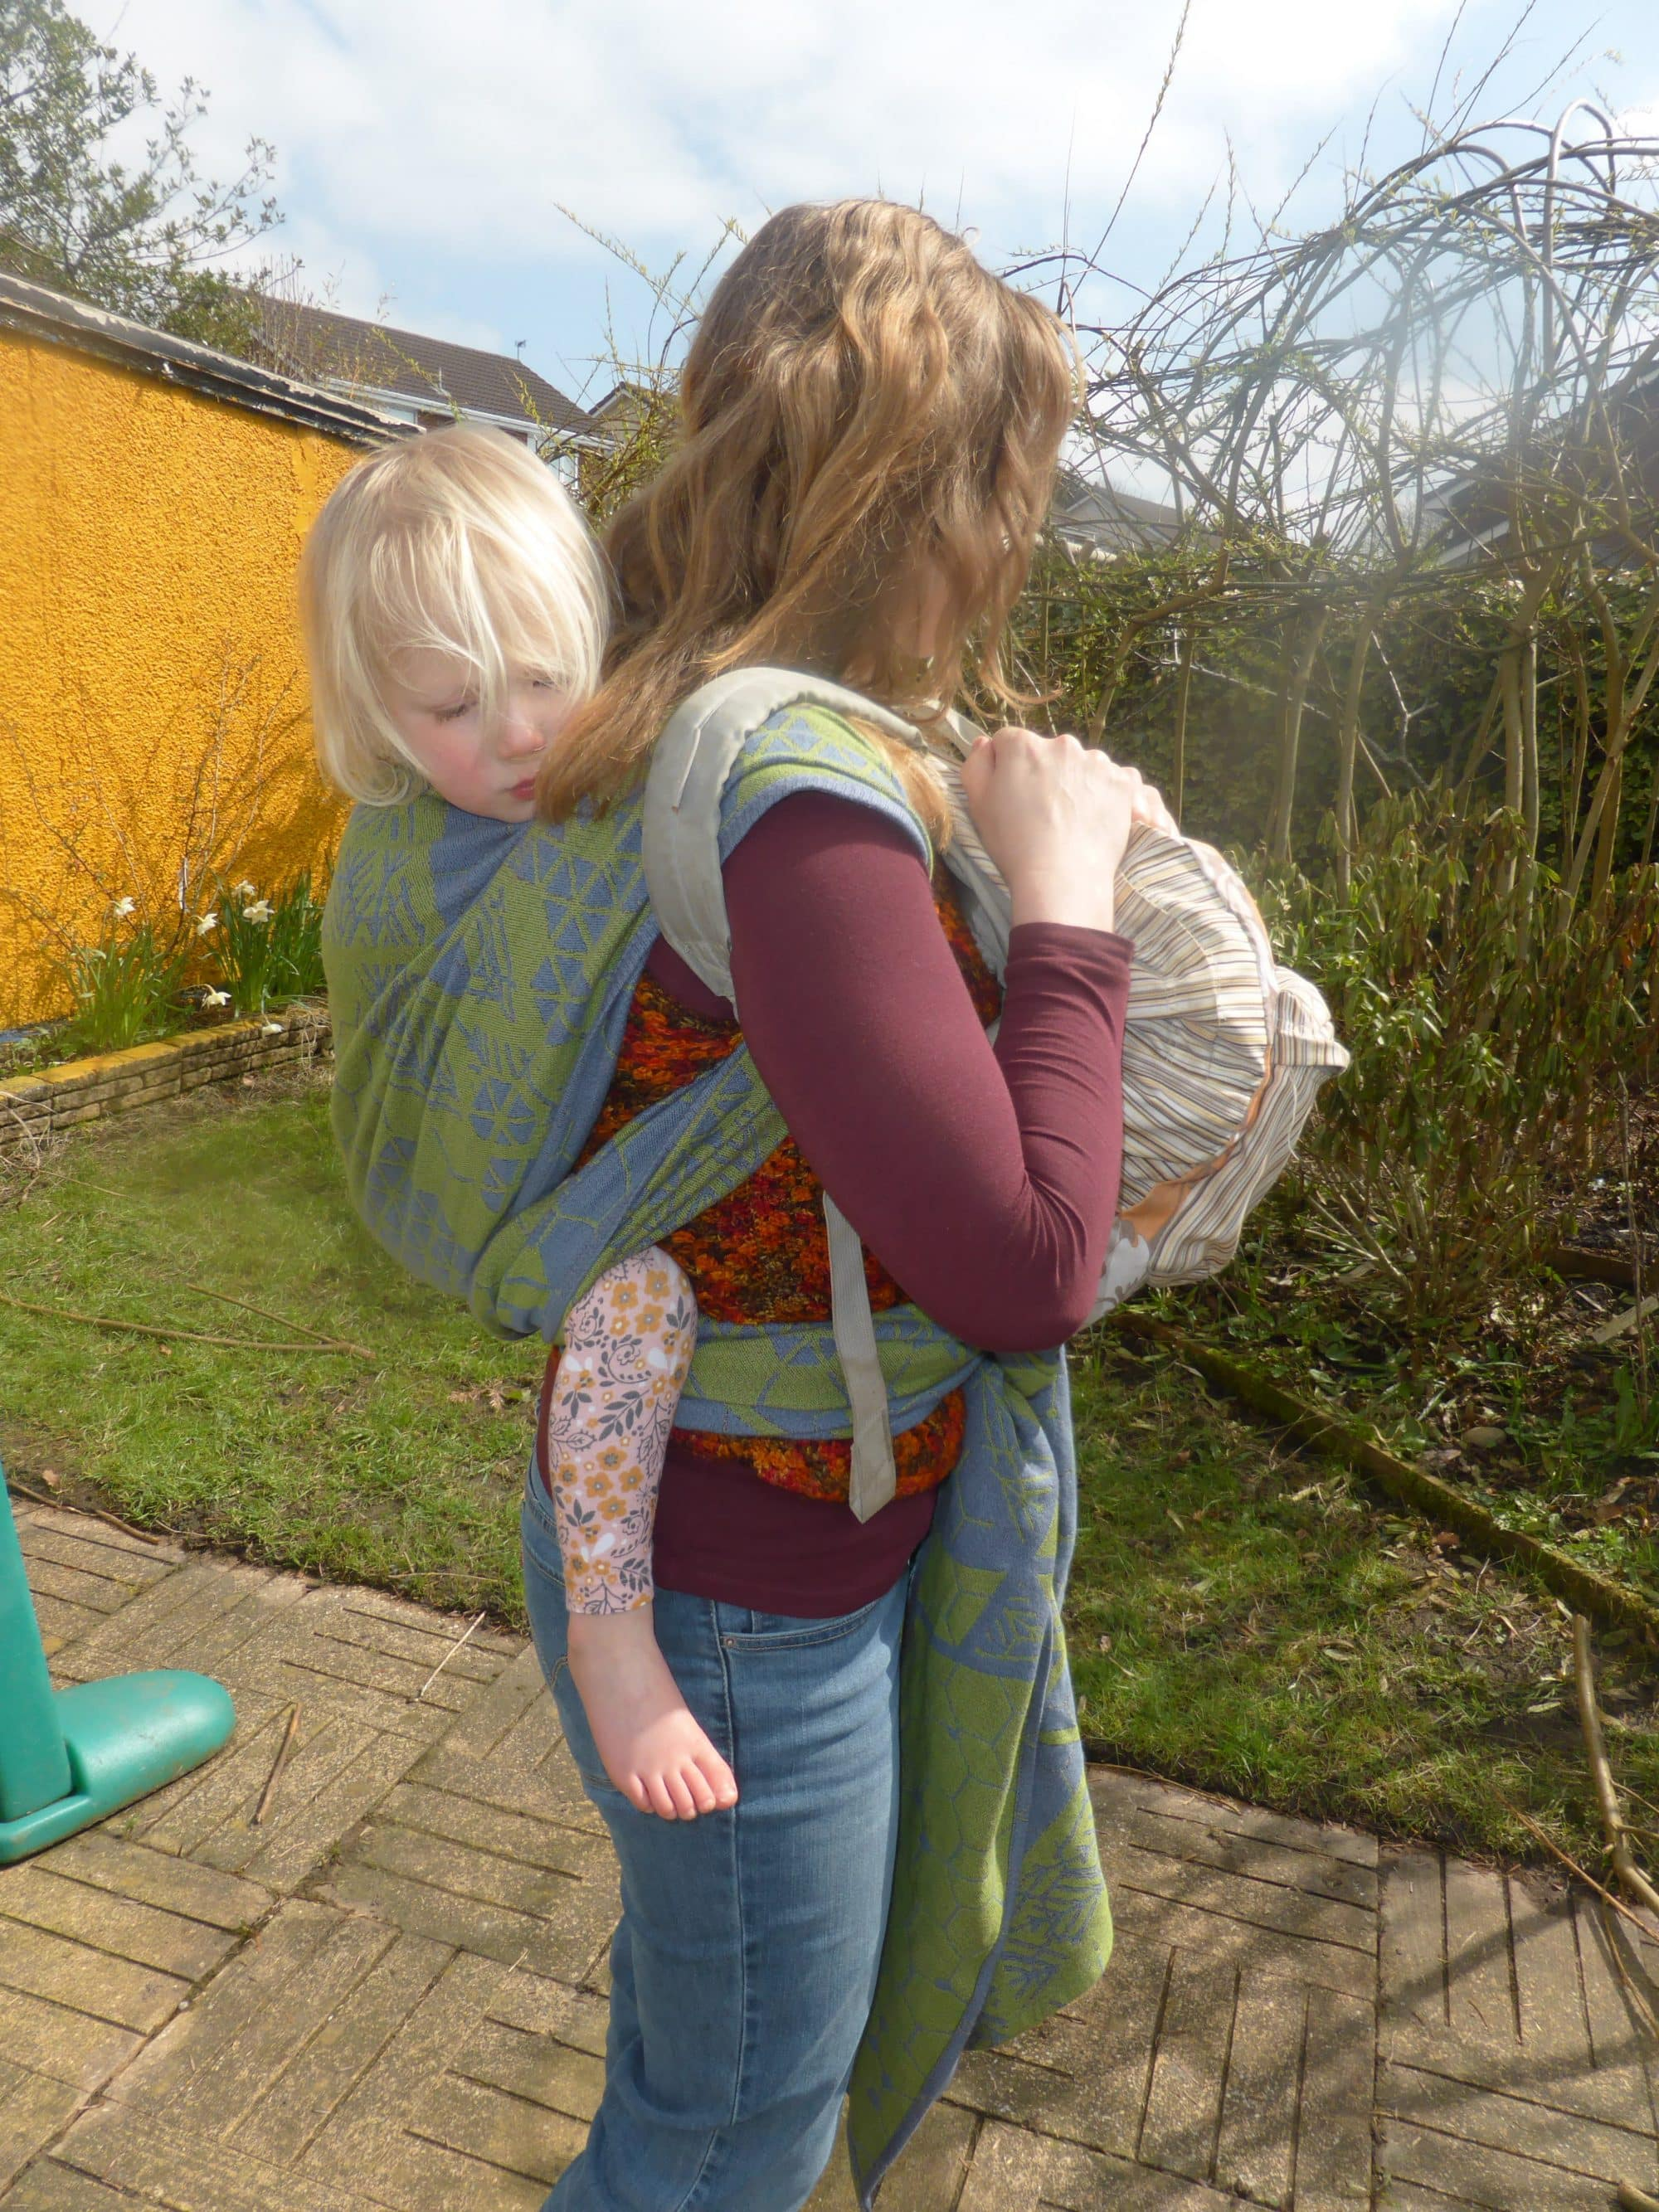 rucksacks are less practical for back carries